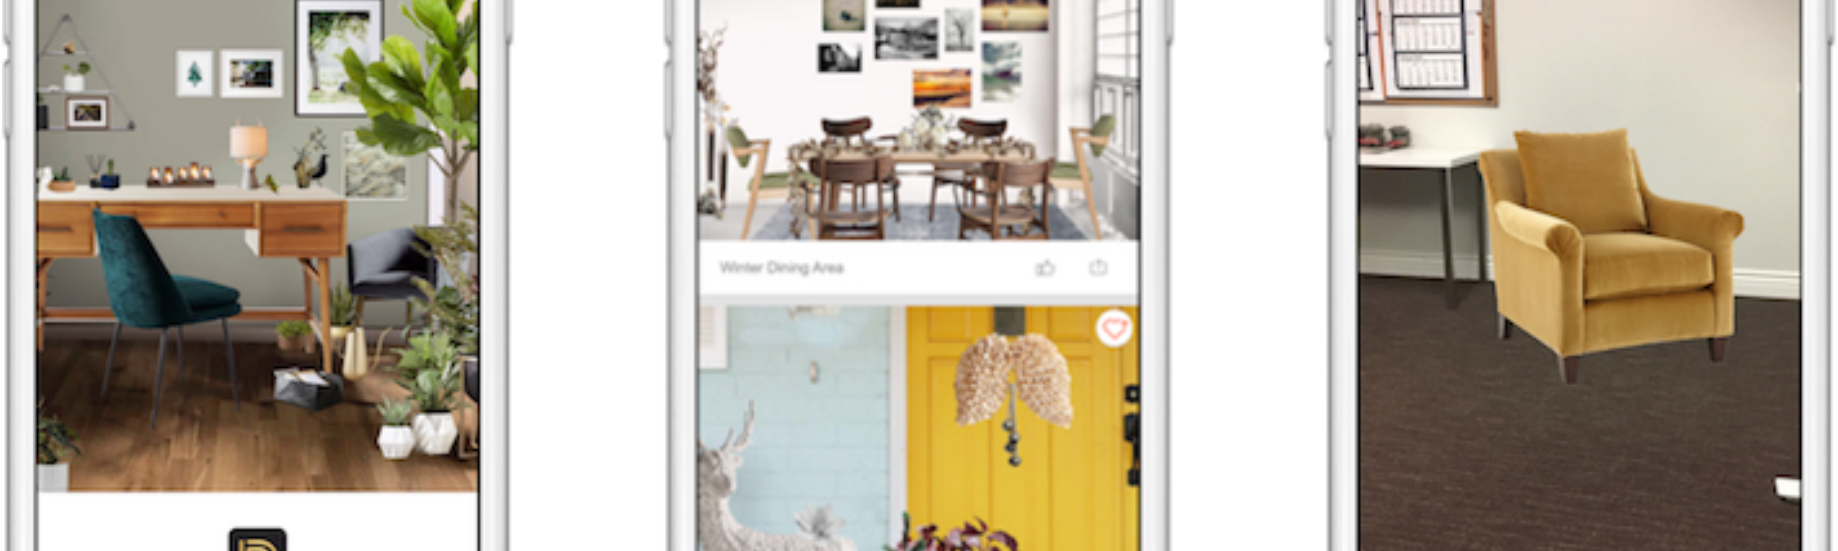 Top 10 AR furniture Apps Review in 2017 - Inborn Experience (UX in